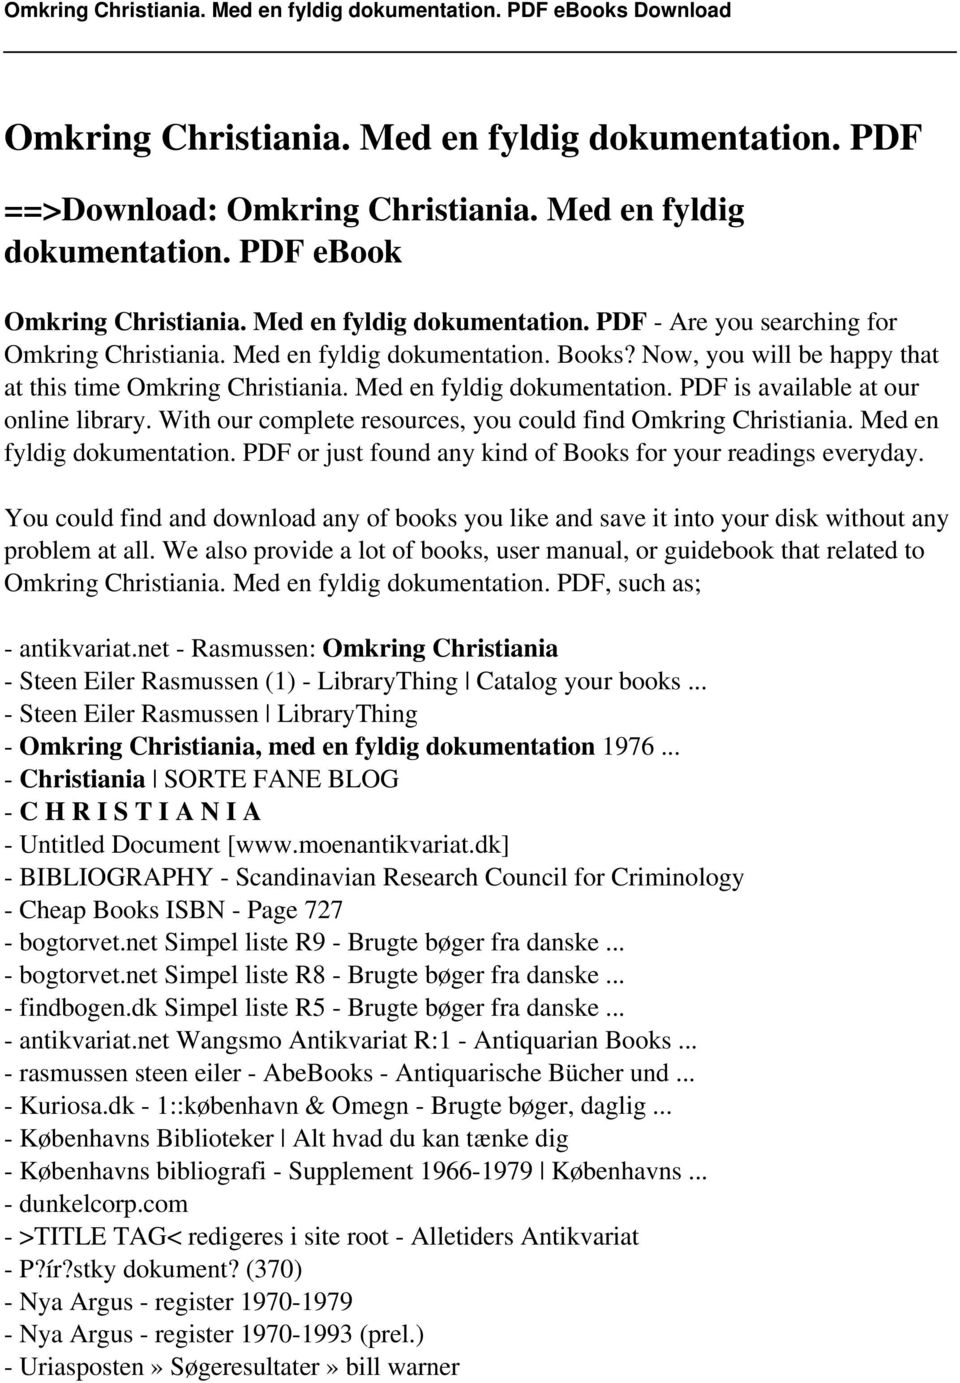 With our complete resources, you could find Omkring Christiania. Med en fyldig dokumentation. PDF or just found any kind of Books for your readings everyday.